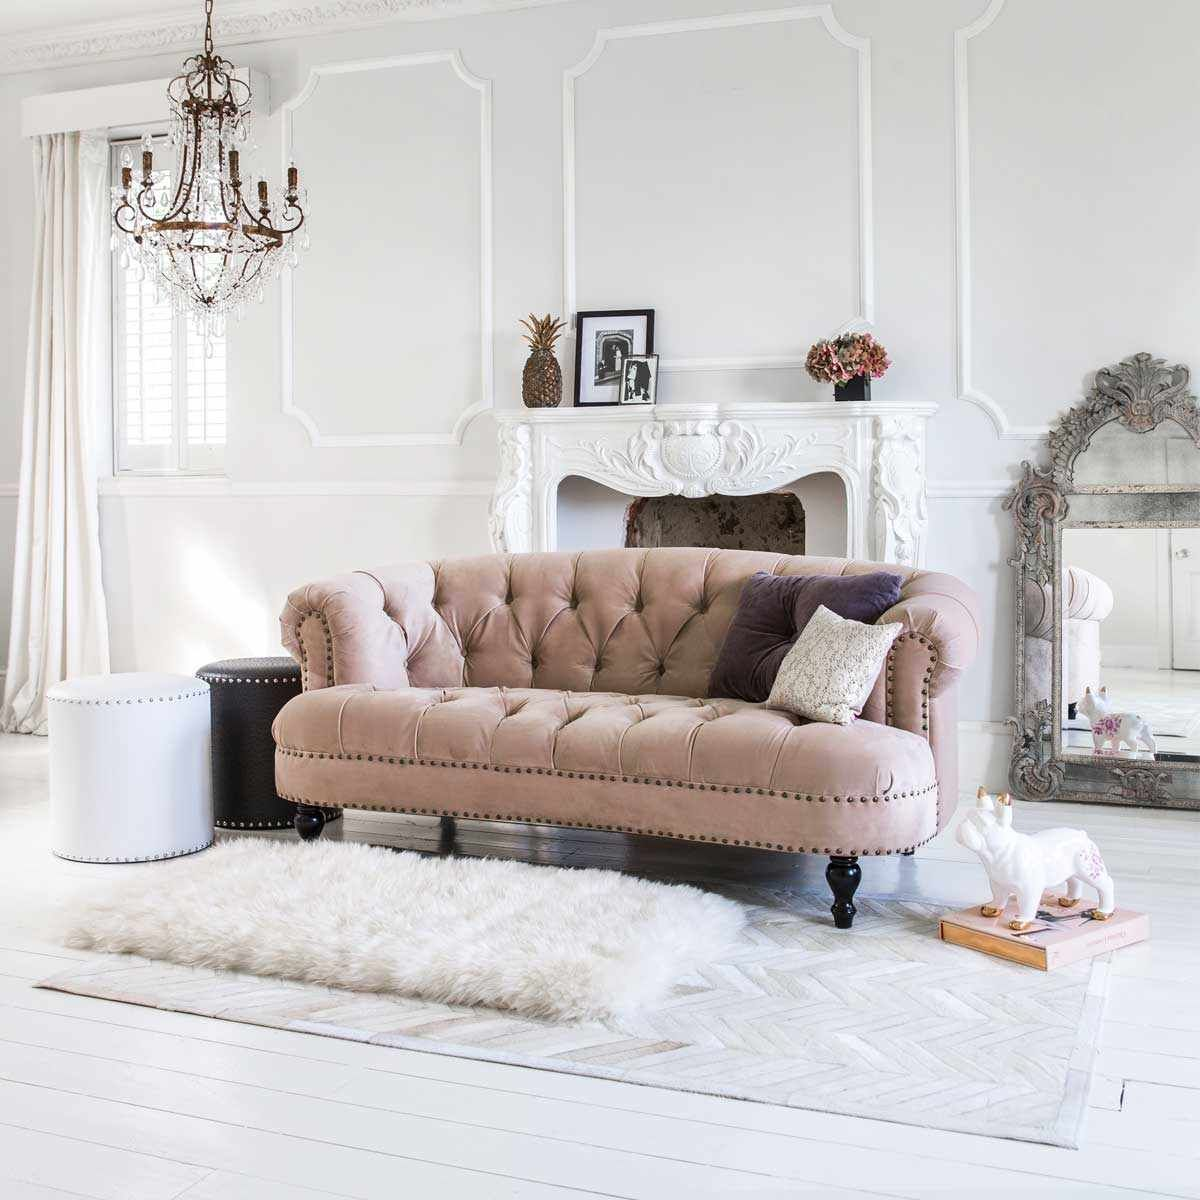 Studded Stool In Grey Faux Leather Footstool Shabby Chic Lounge Pink Velvet Sofa Luxury Sofa